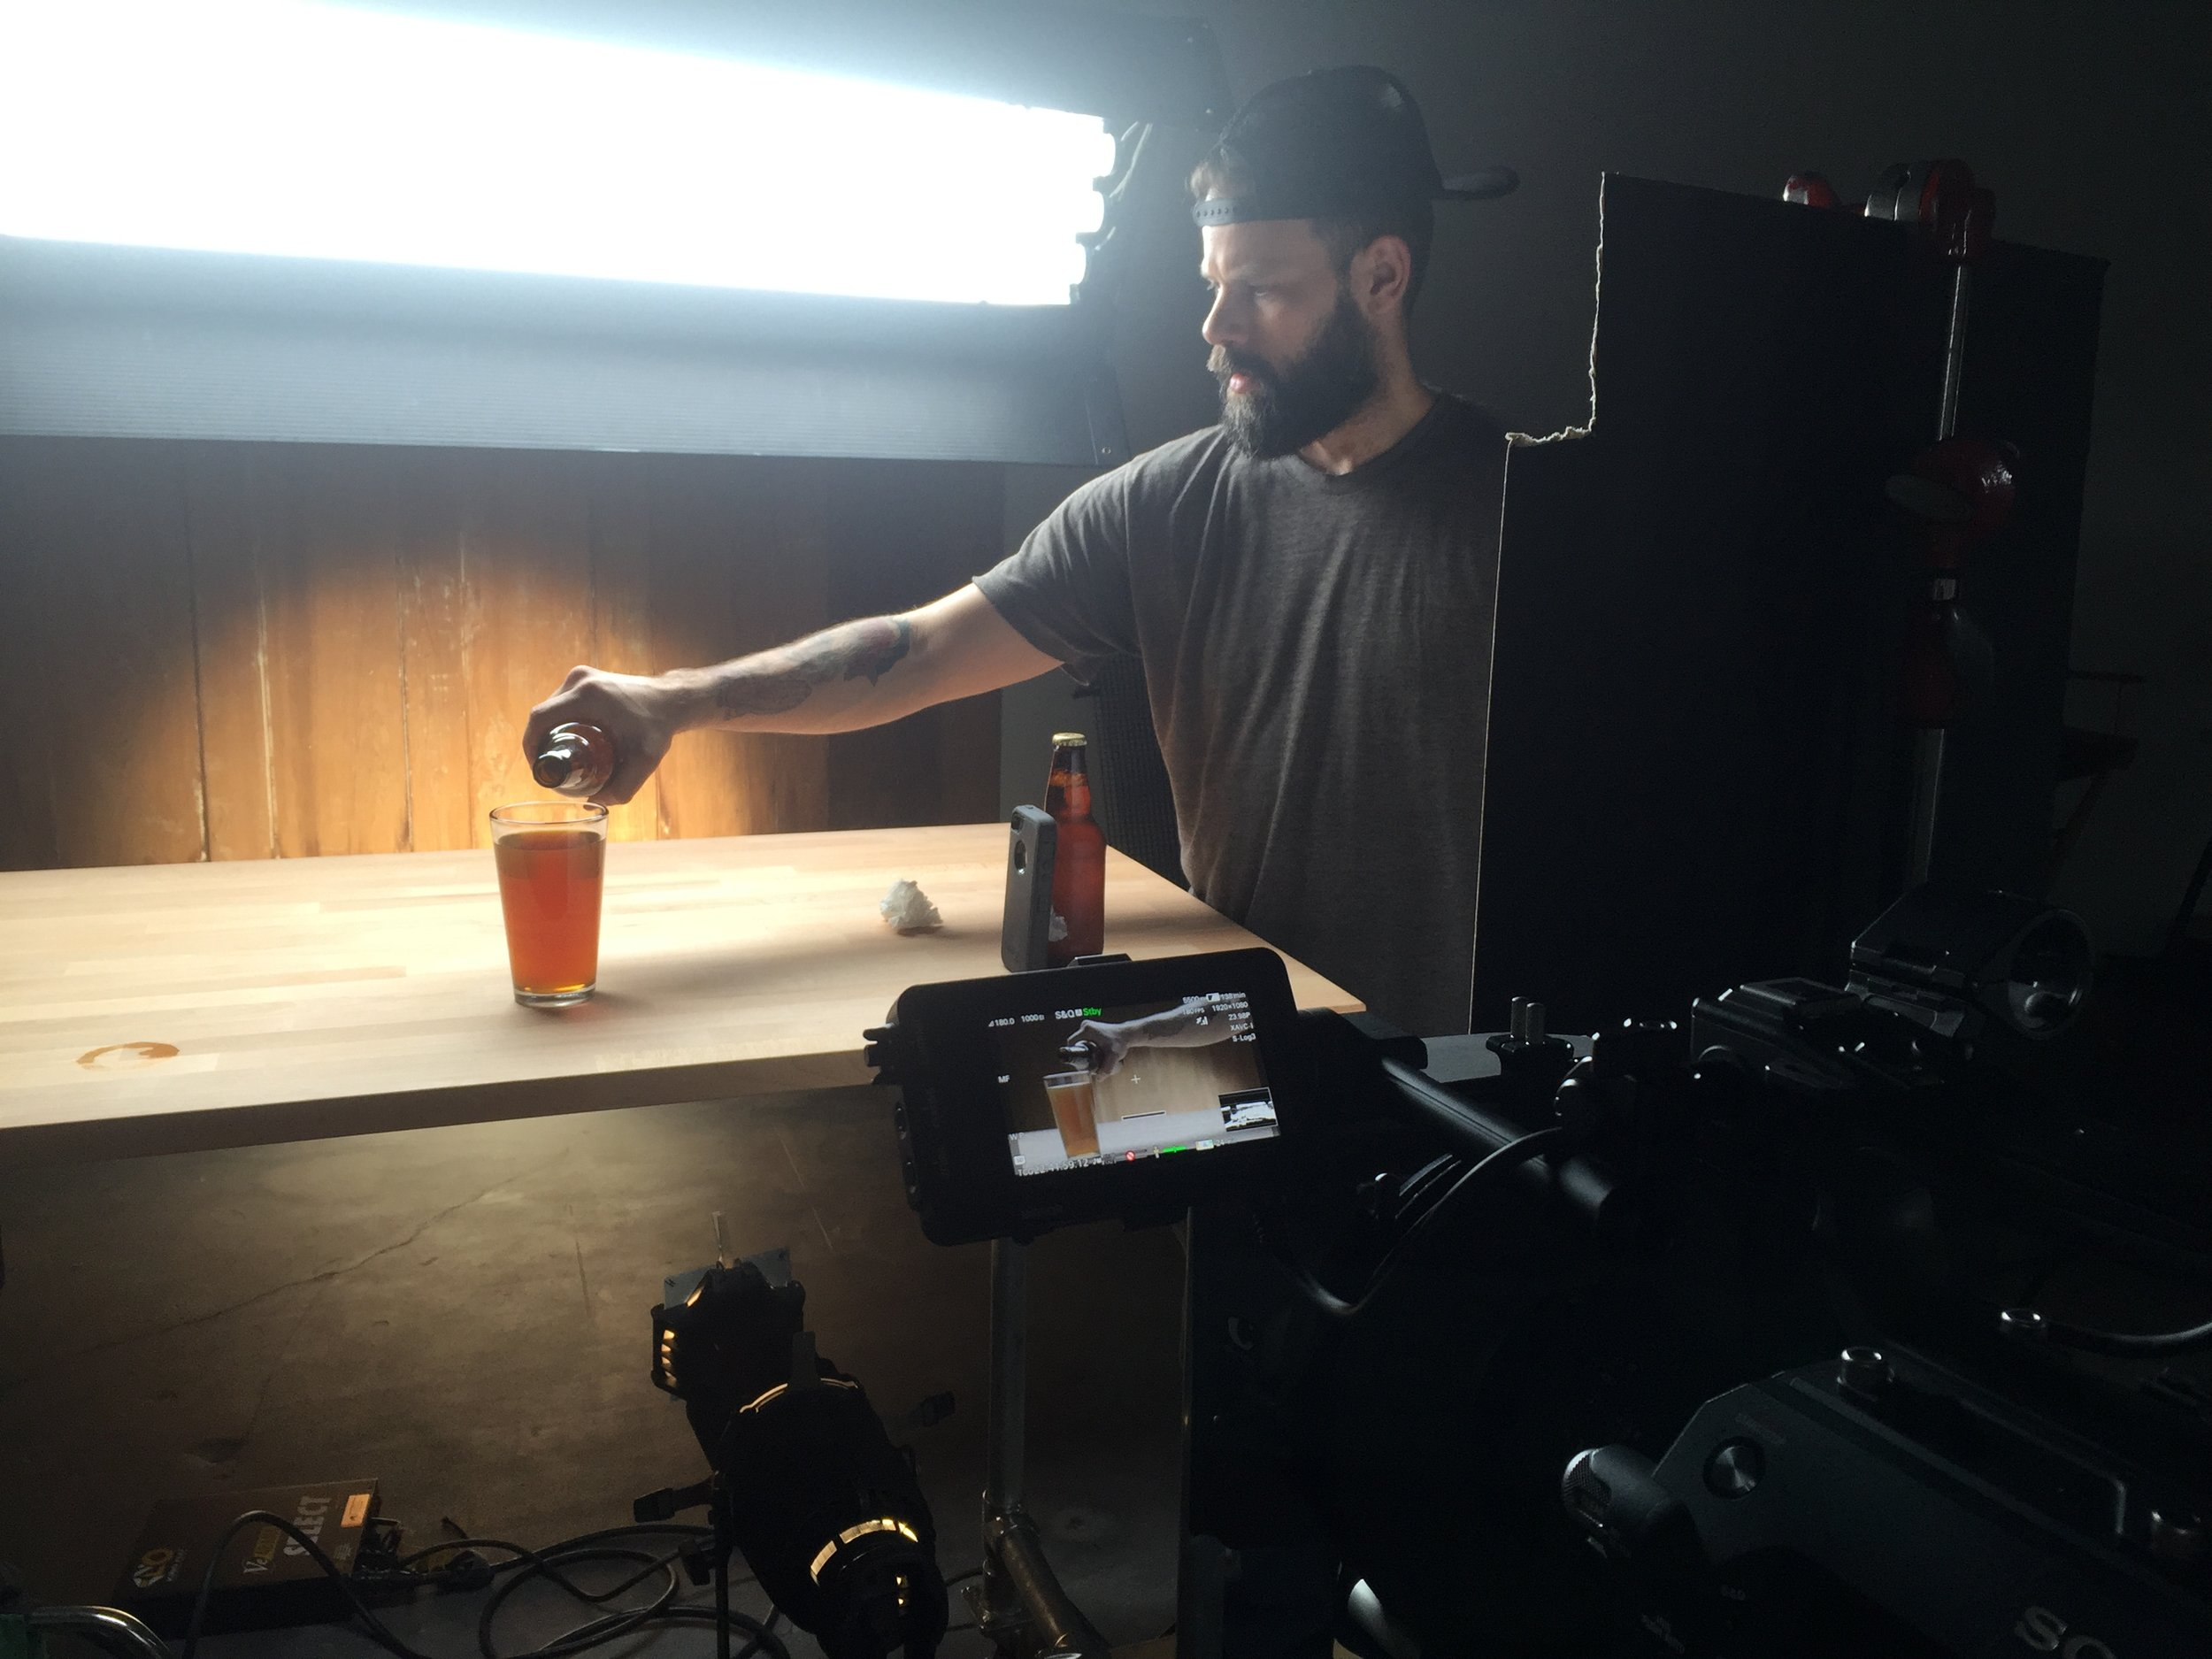 Social-Media-Video-Beer-Pour-Mike.JPG